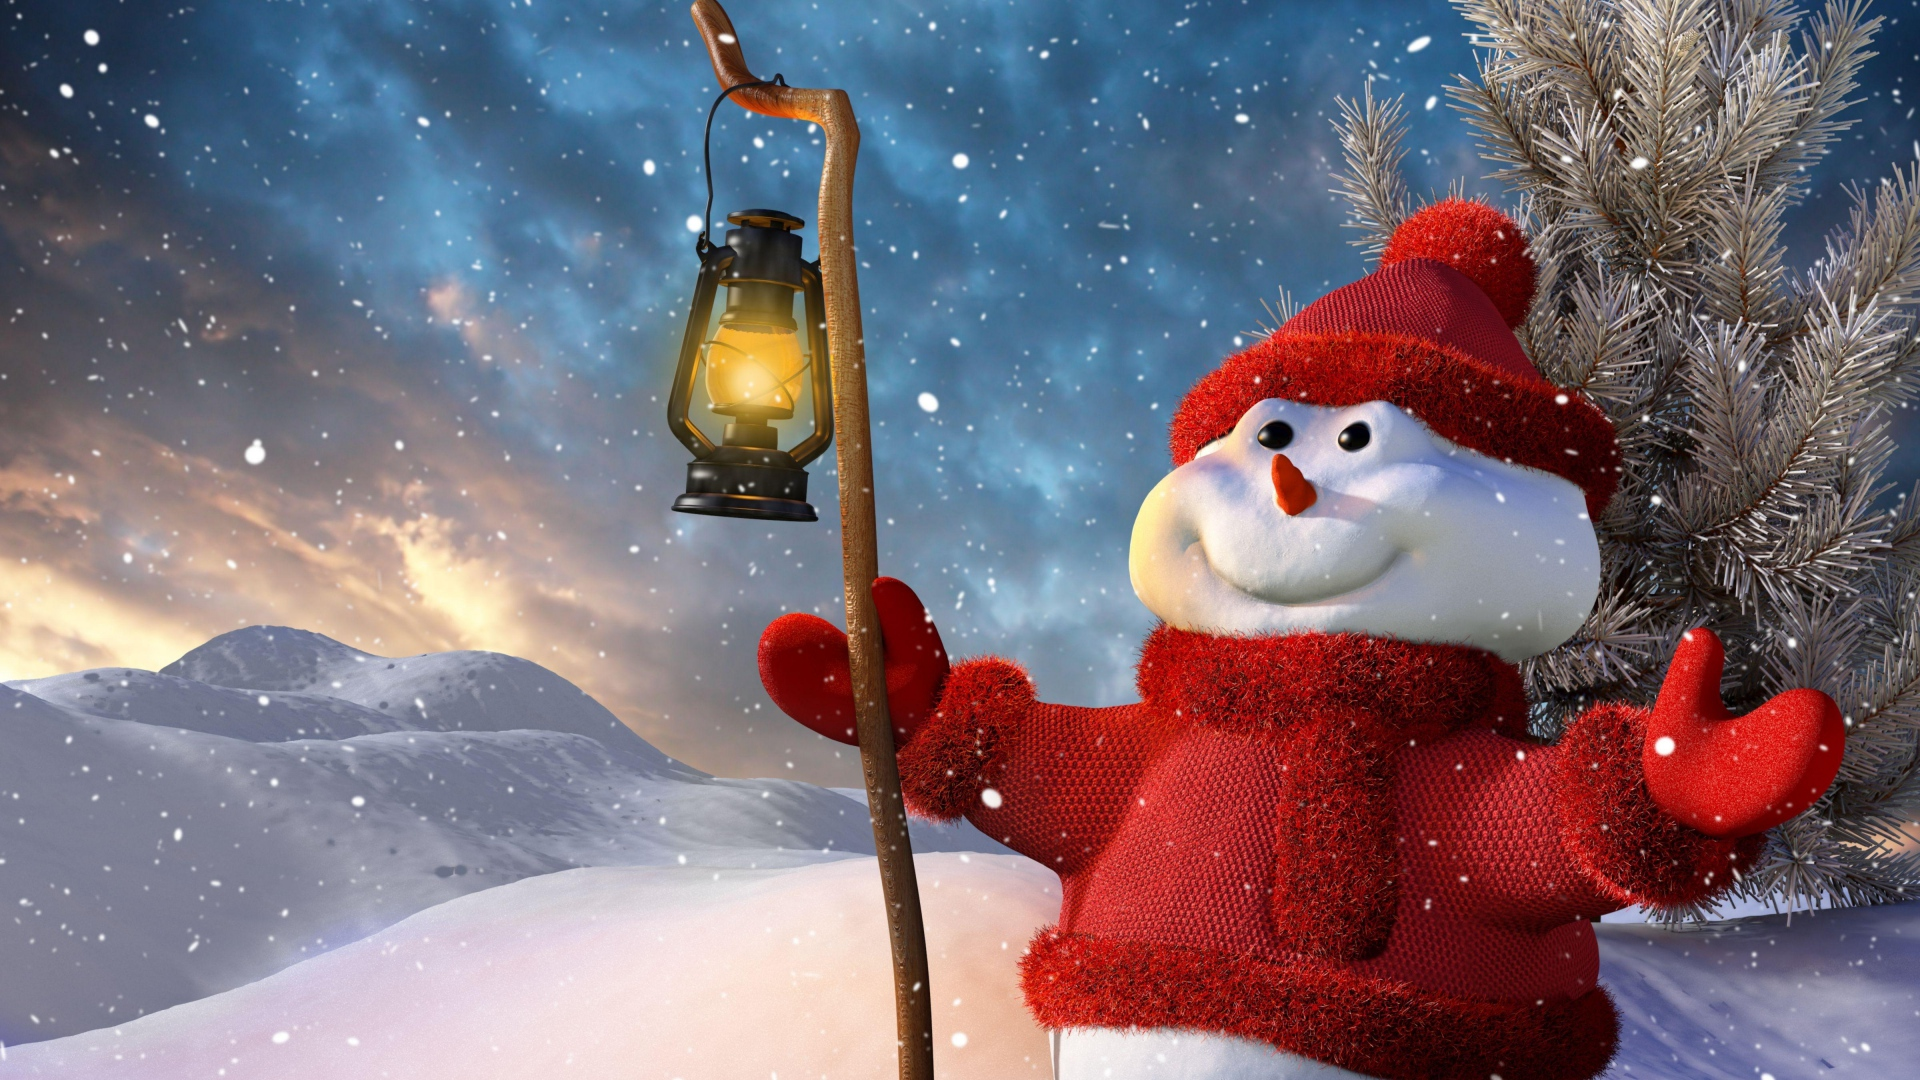 Christmas Hd Wallpapers 1080p.Download Wallpaper 1920x1080 New Year Christmas Snowman